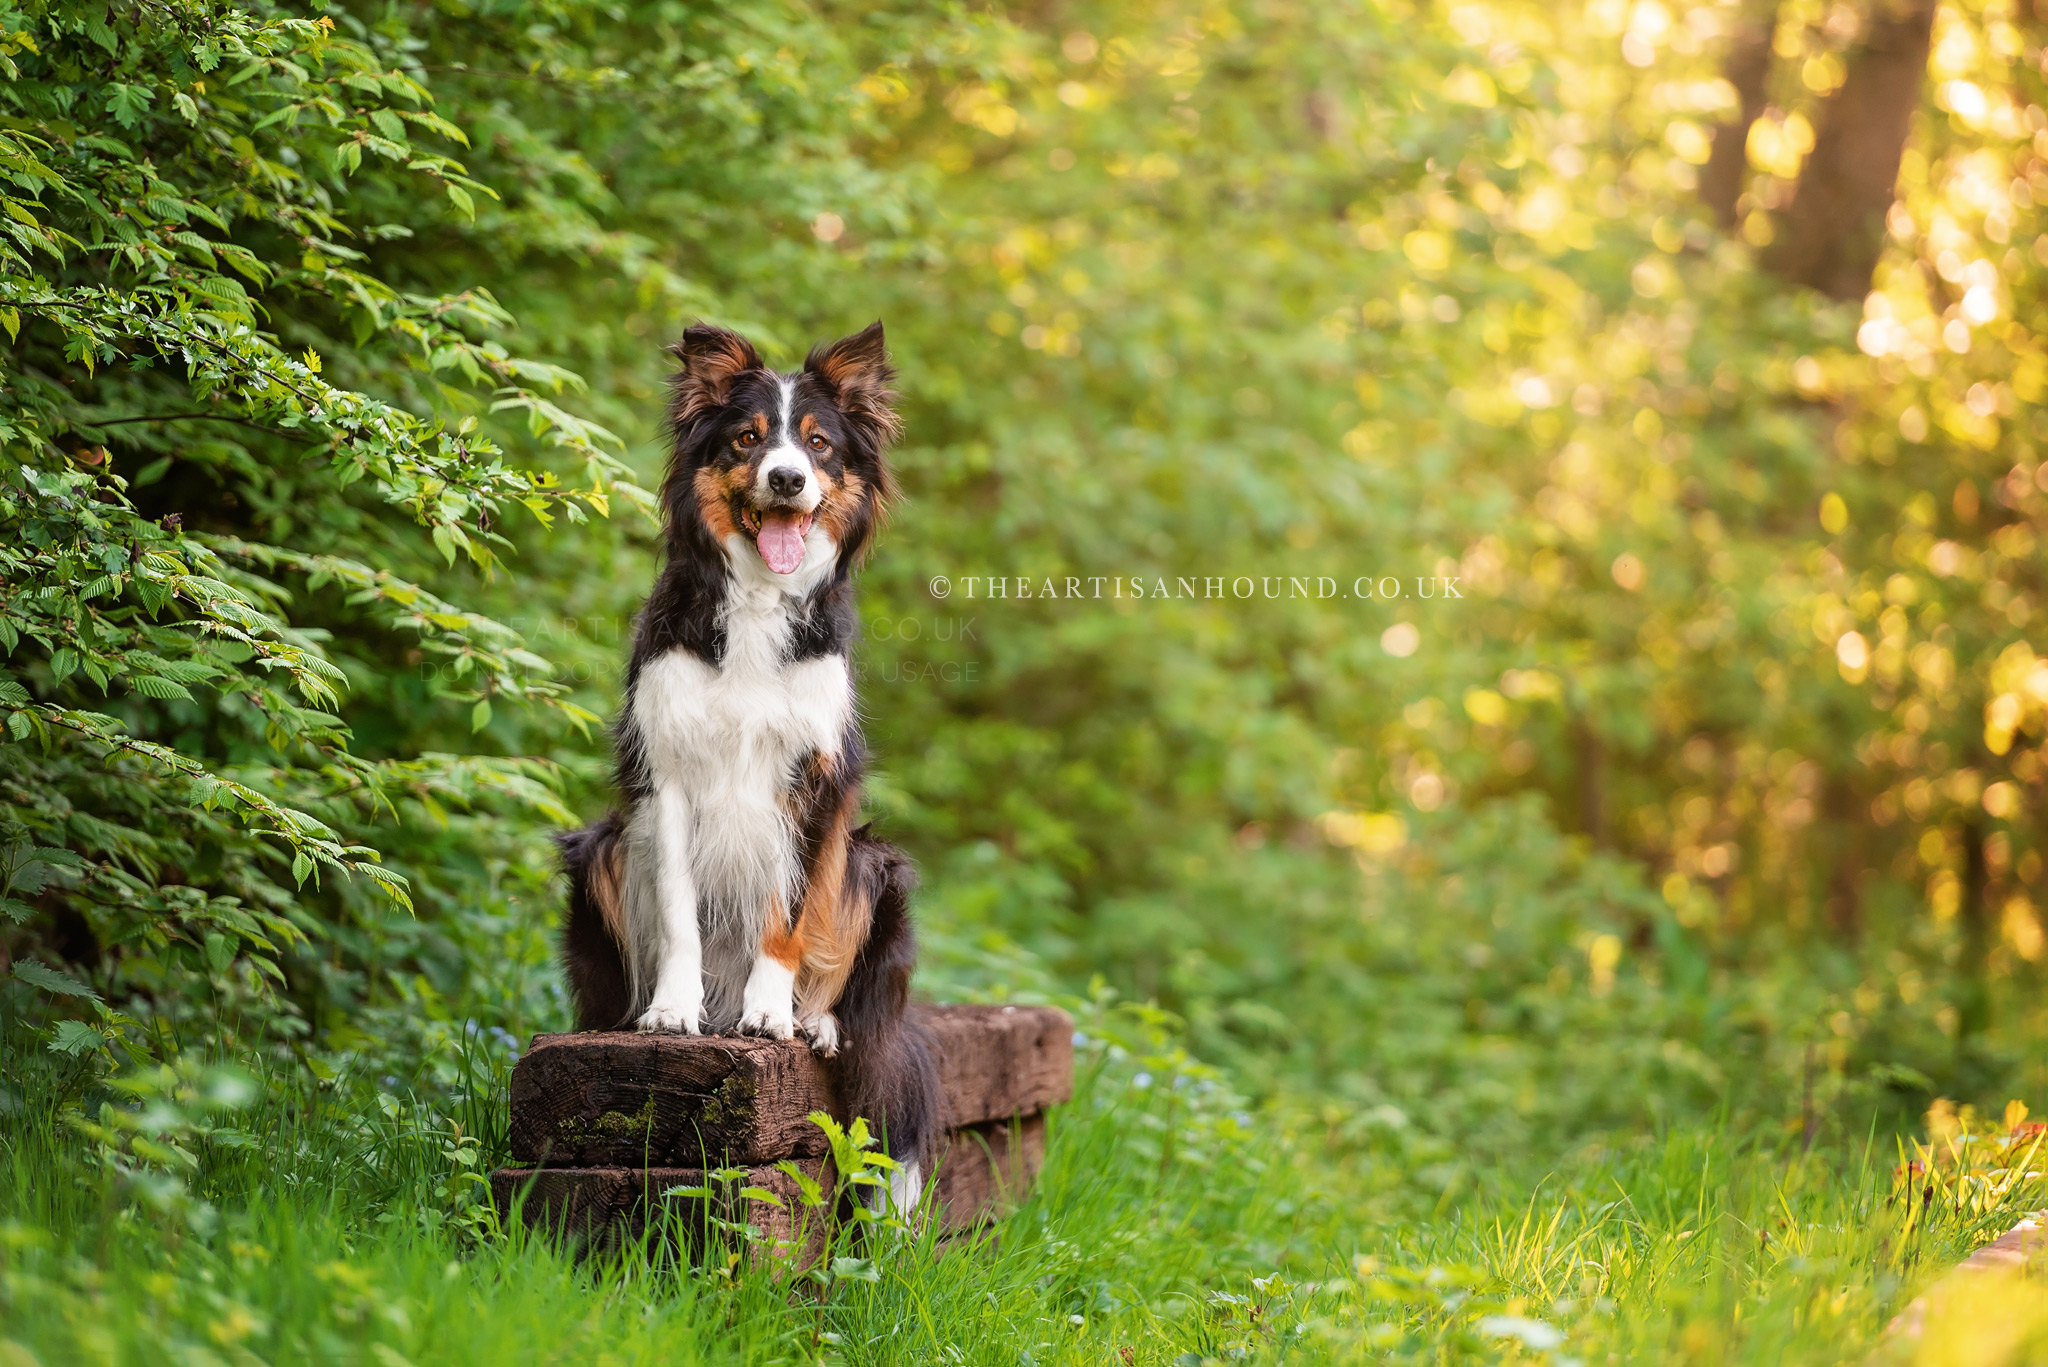 Border Collie dog sitting on wooden beams under trees